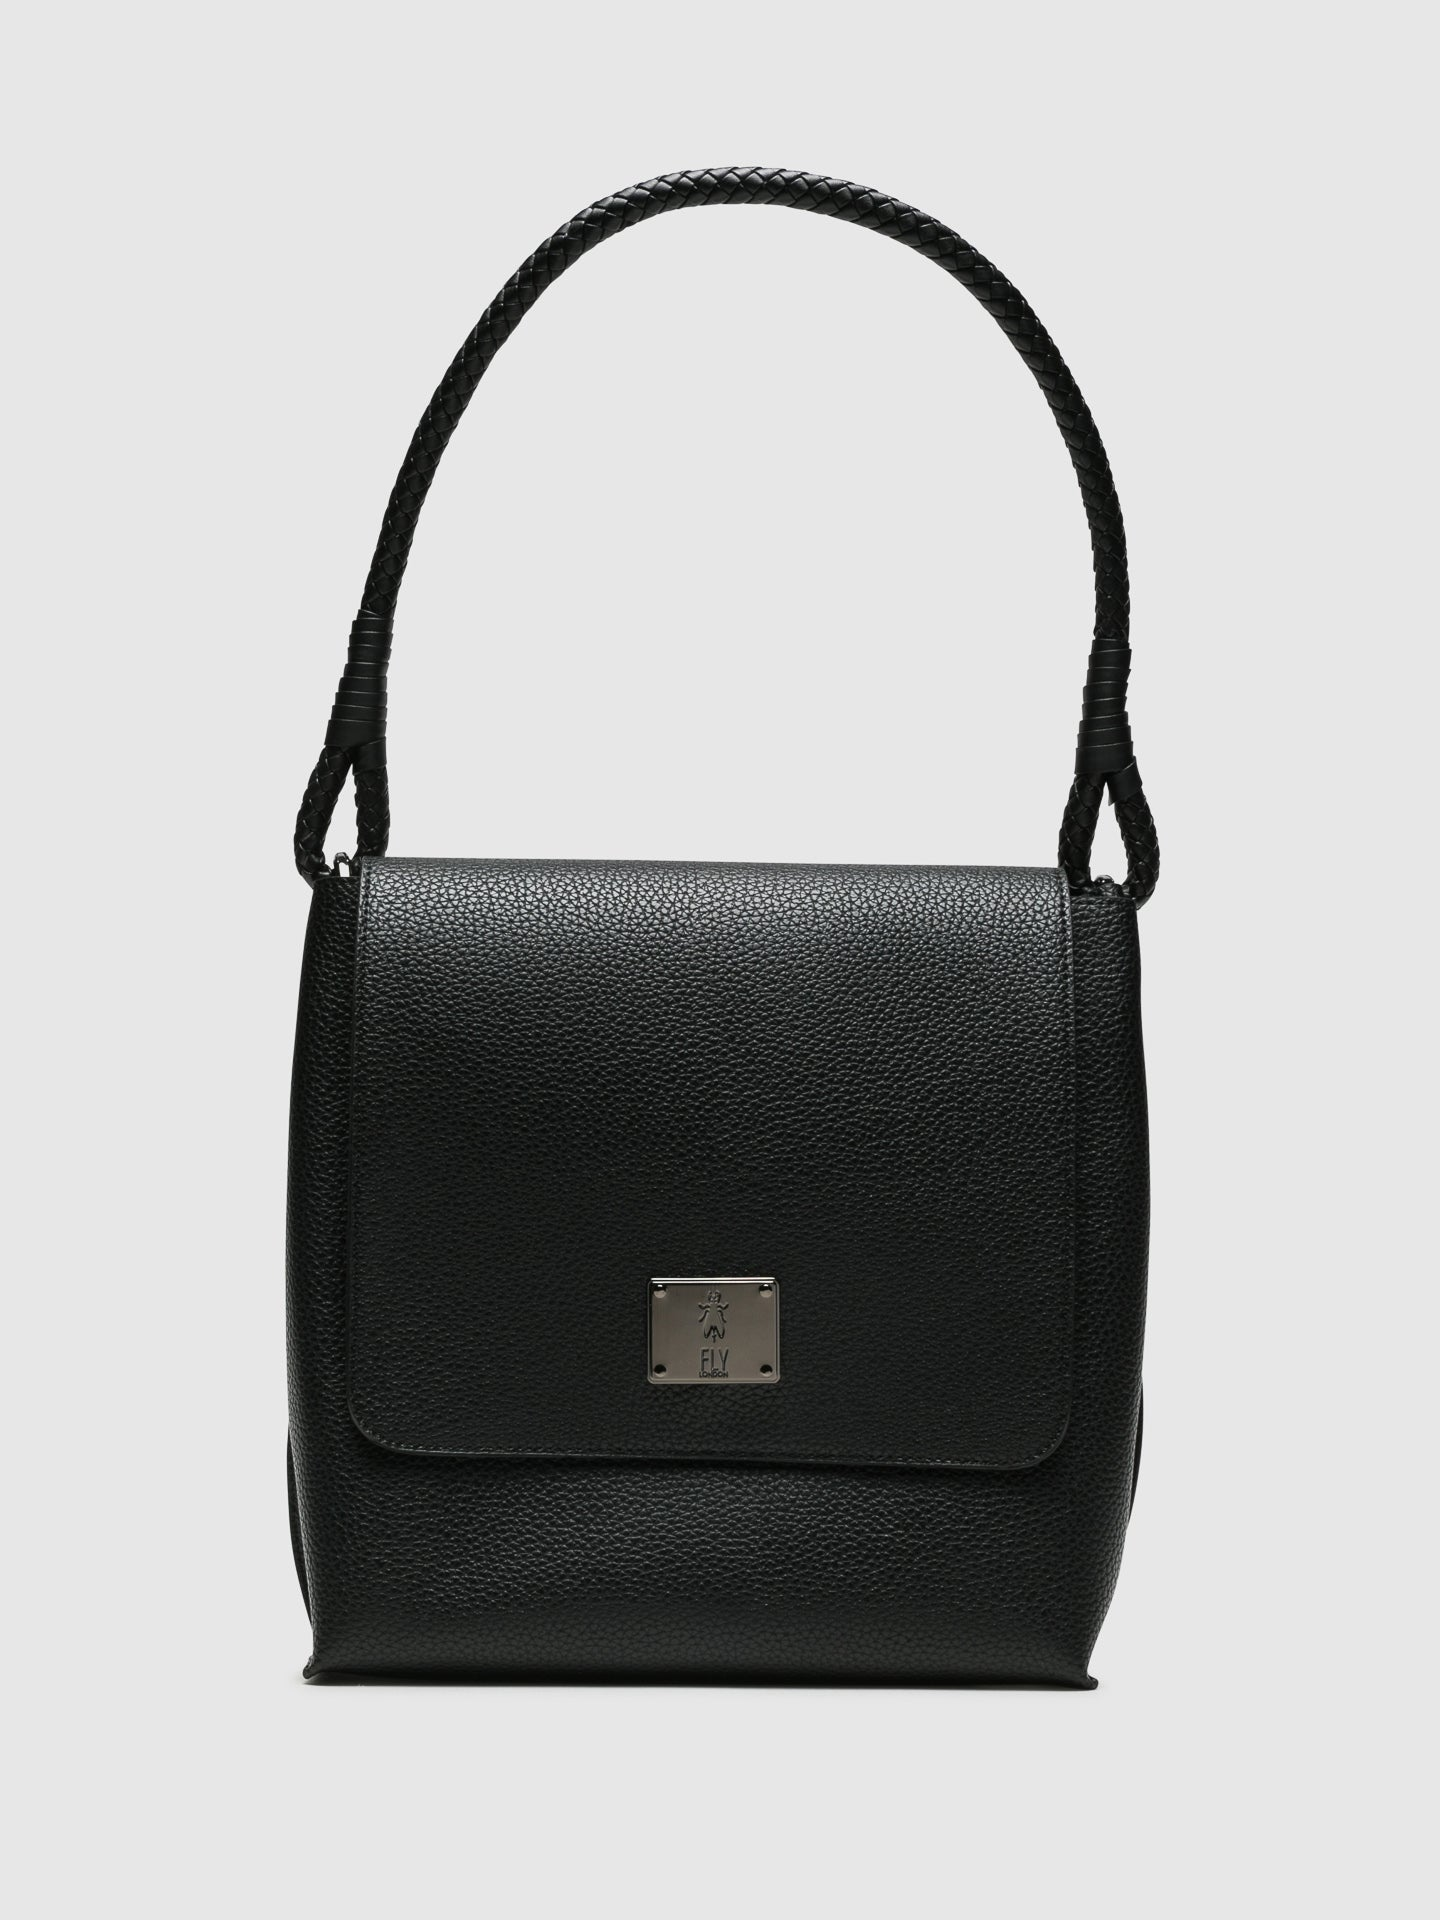 Fly London Black Shoulder Bags